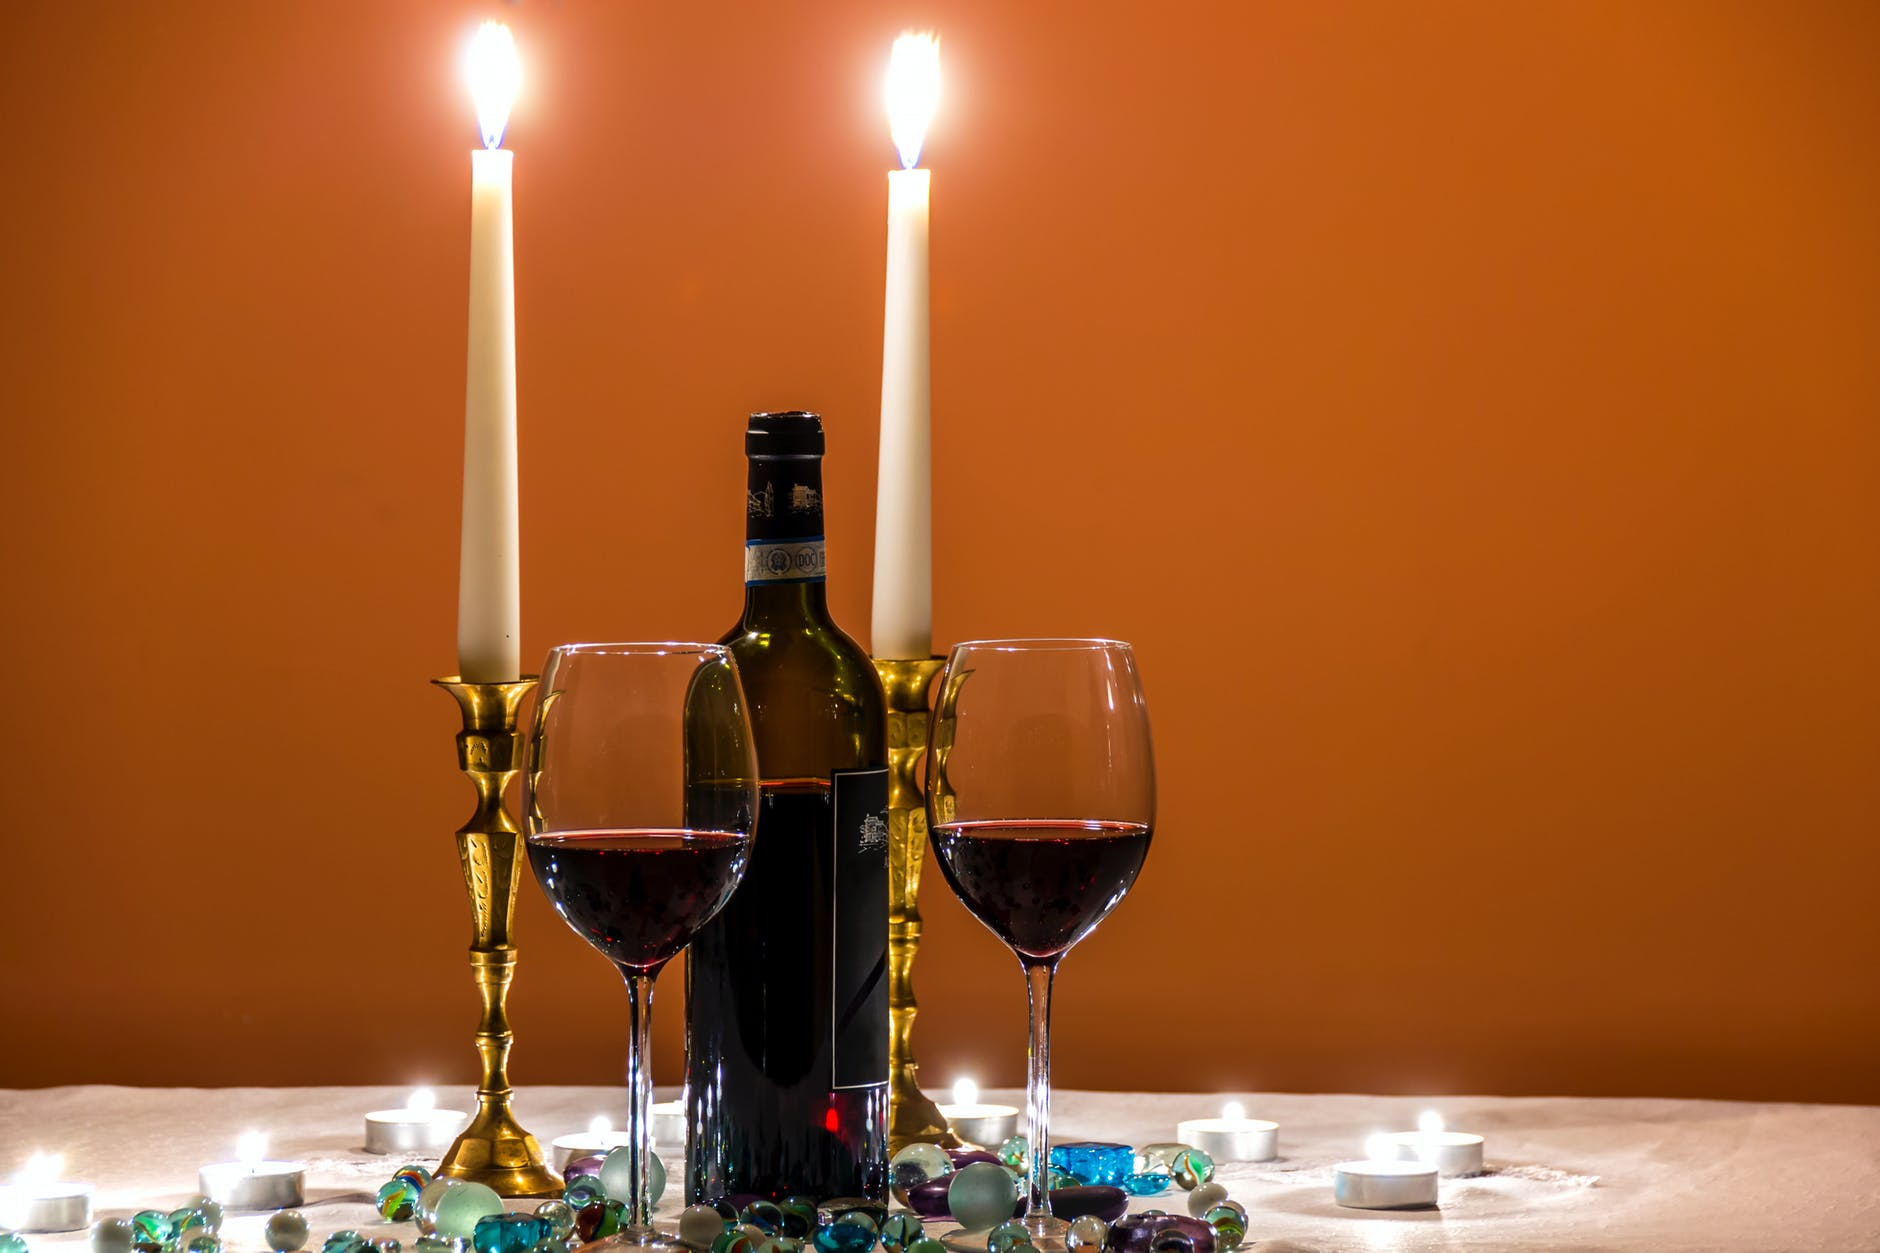 A bottle of wine and candles